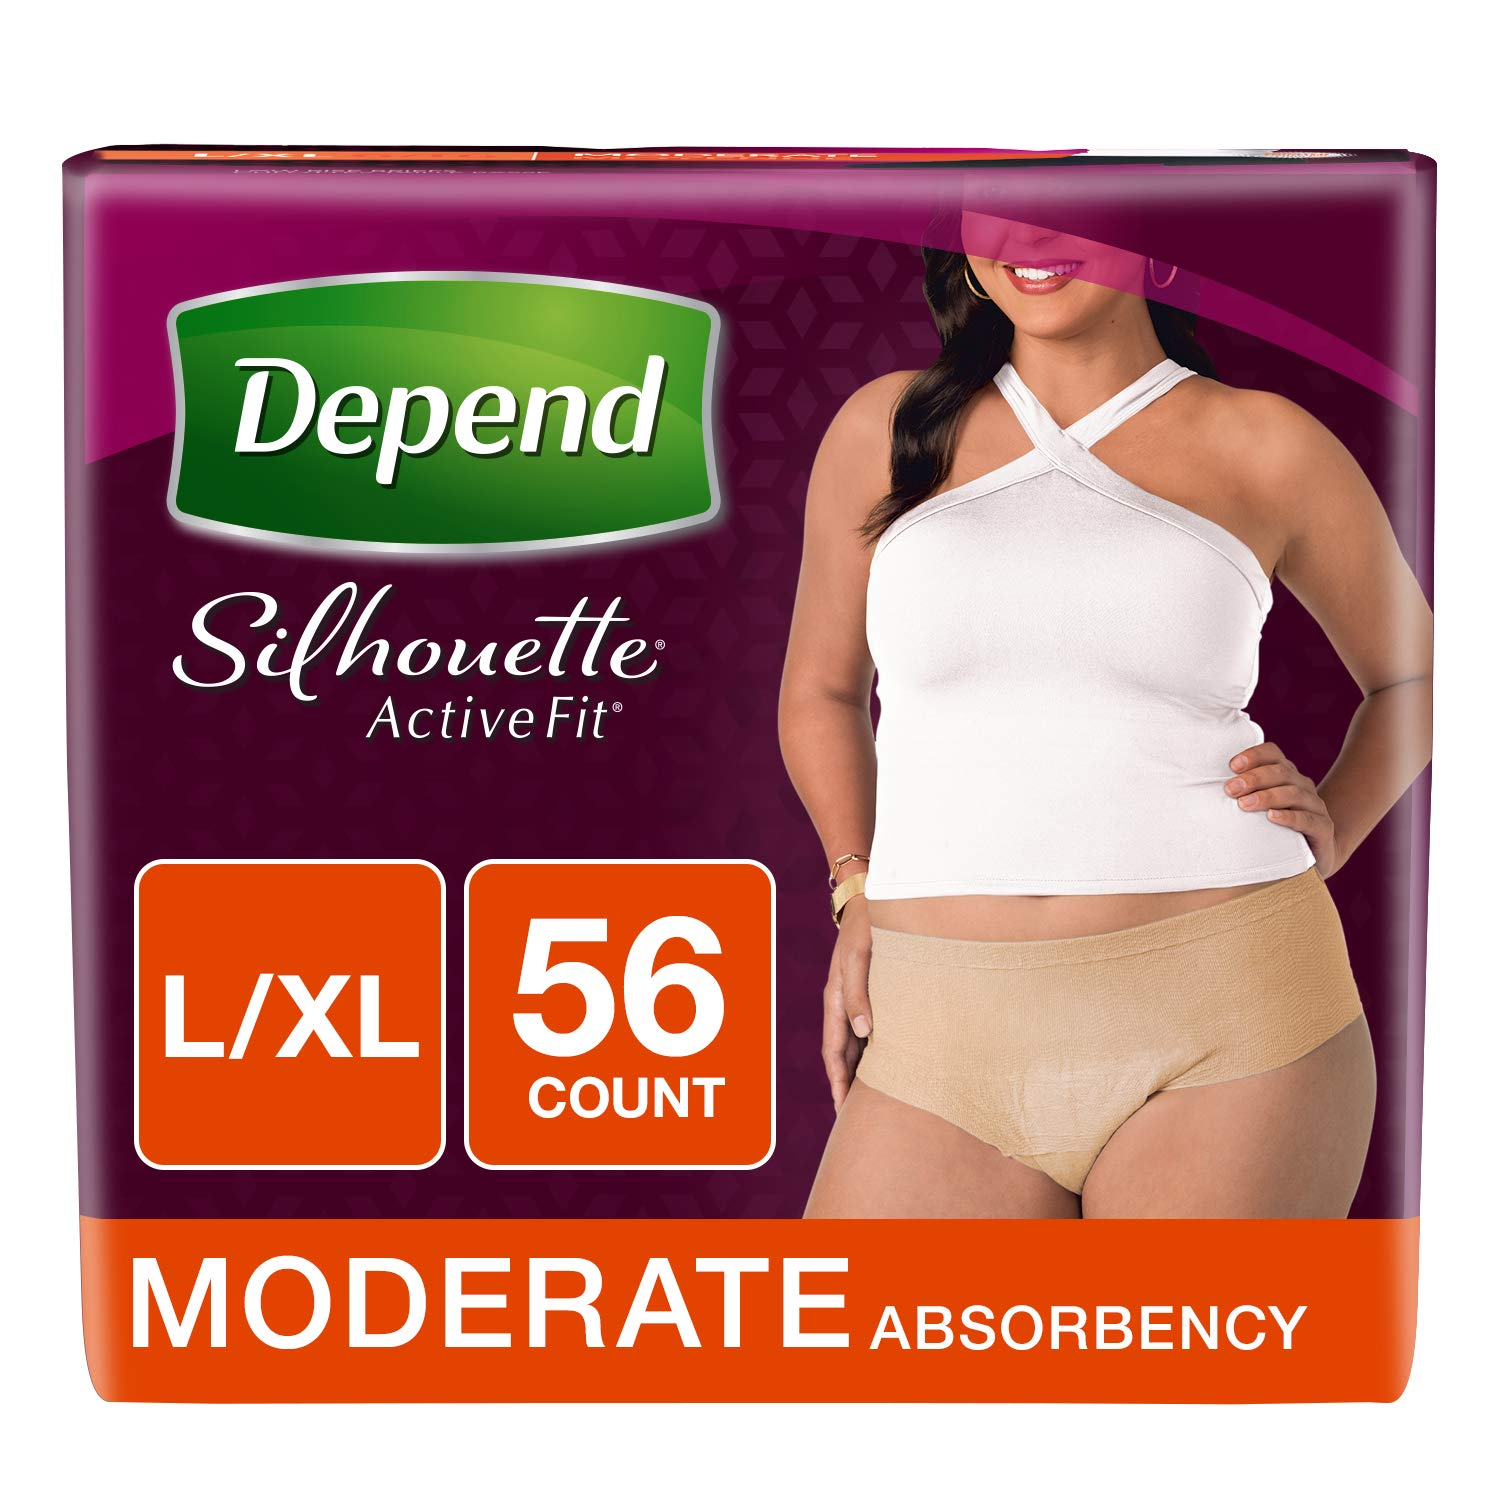 Depend Silhouette Active Fit Incontinence Underwear for Women, Moderate Absorbency, L/XL, Beige, 56 Count